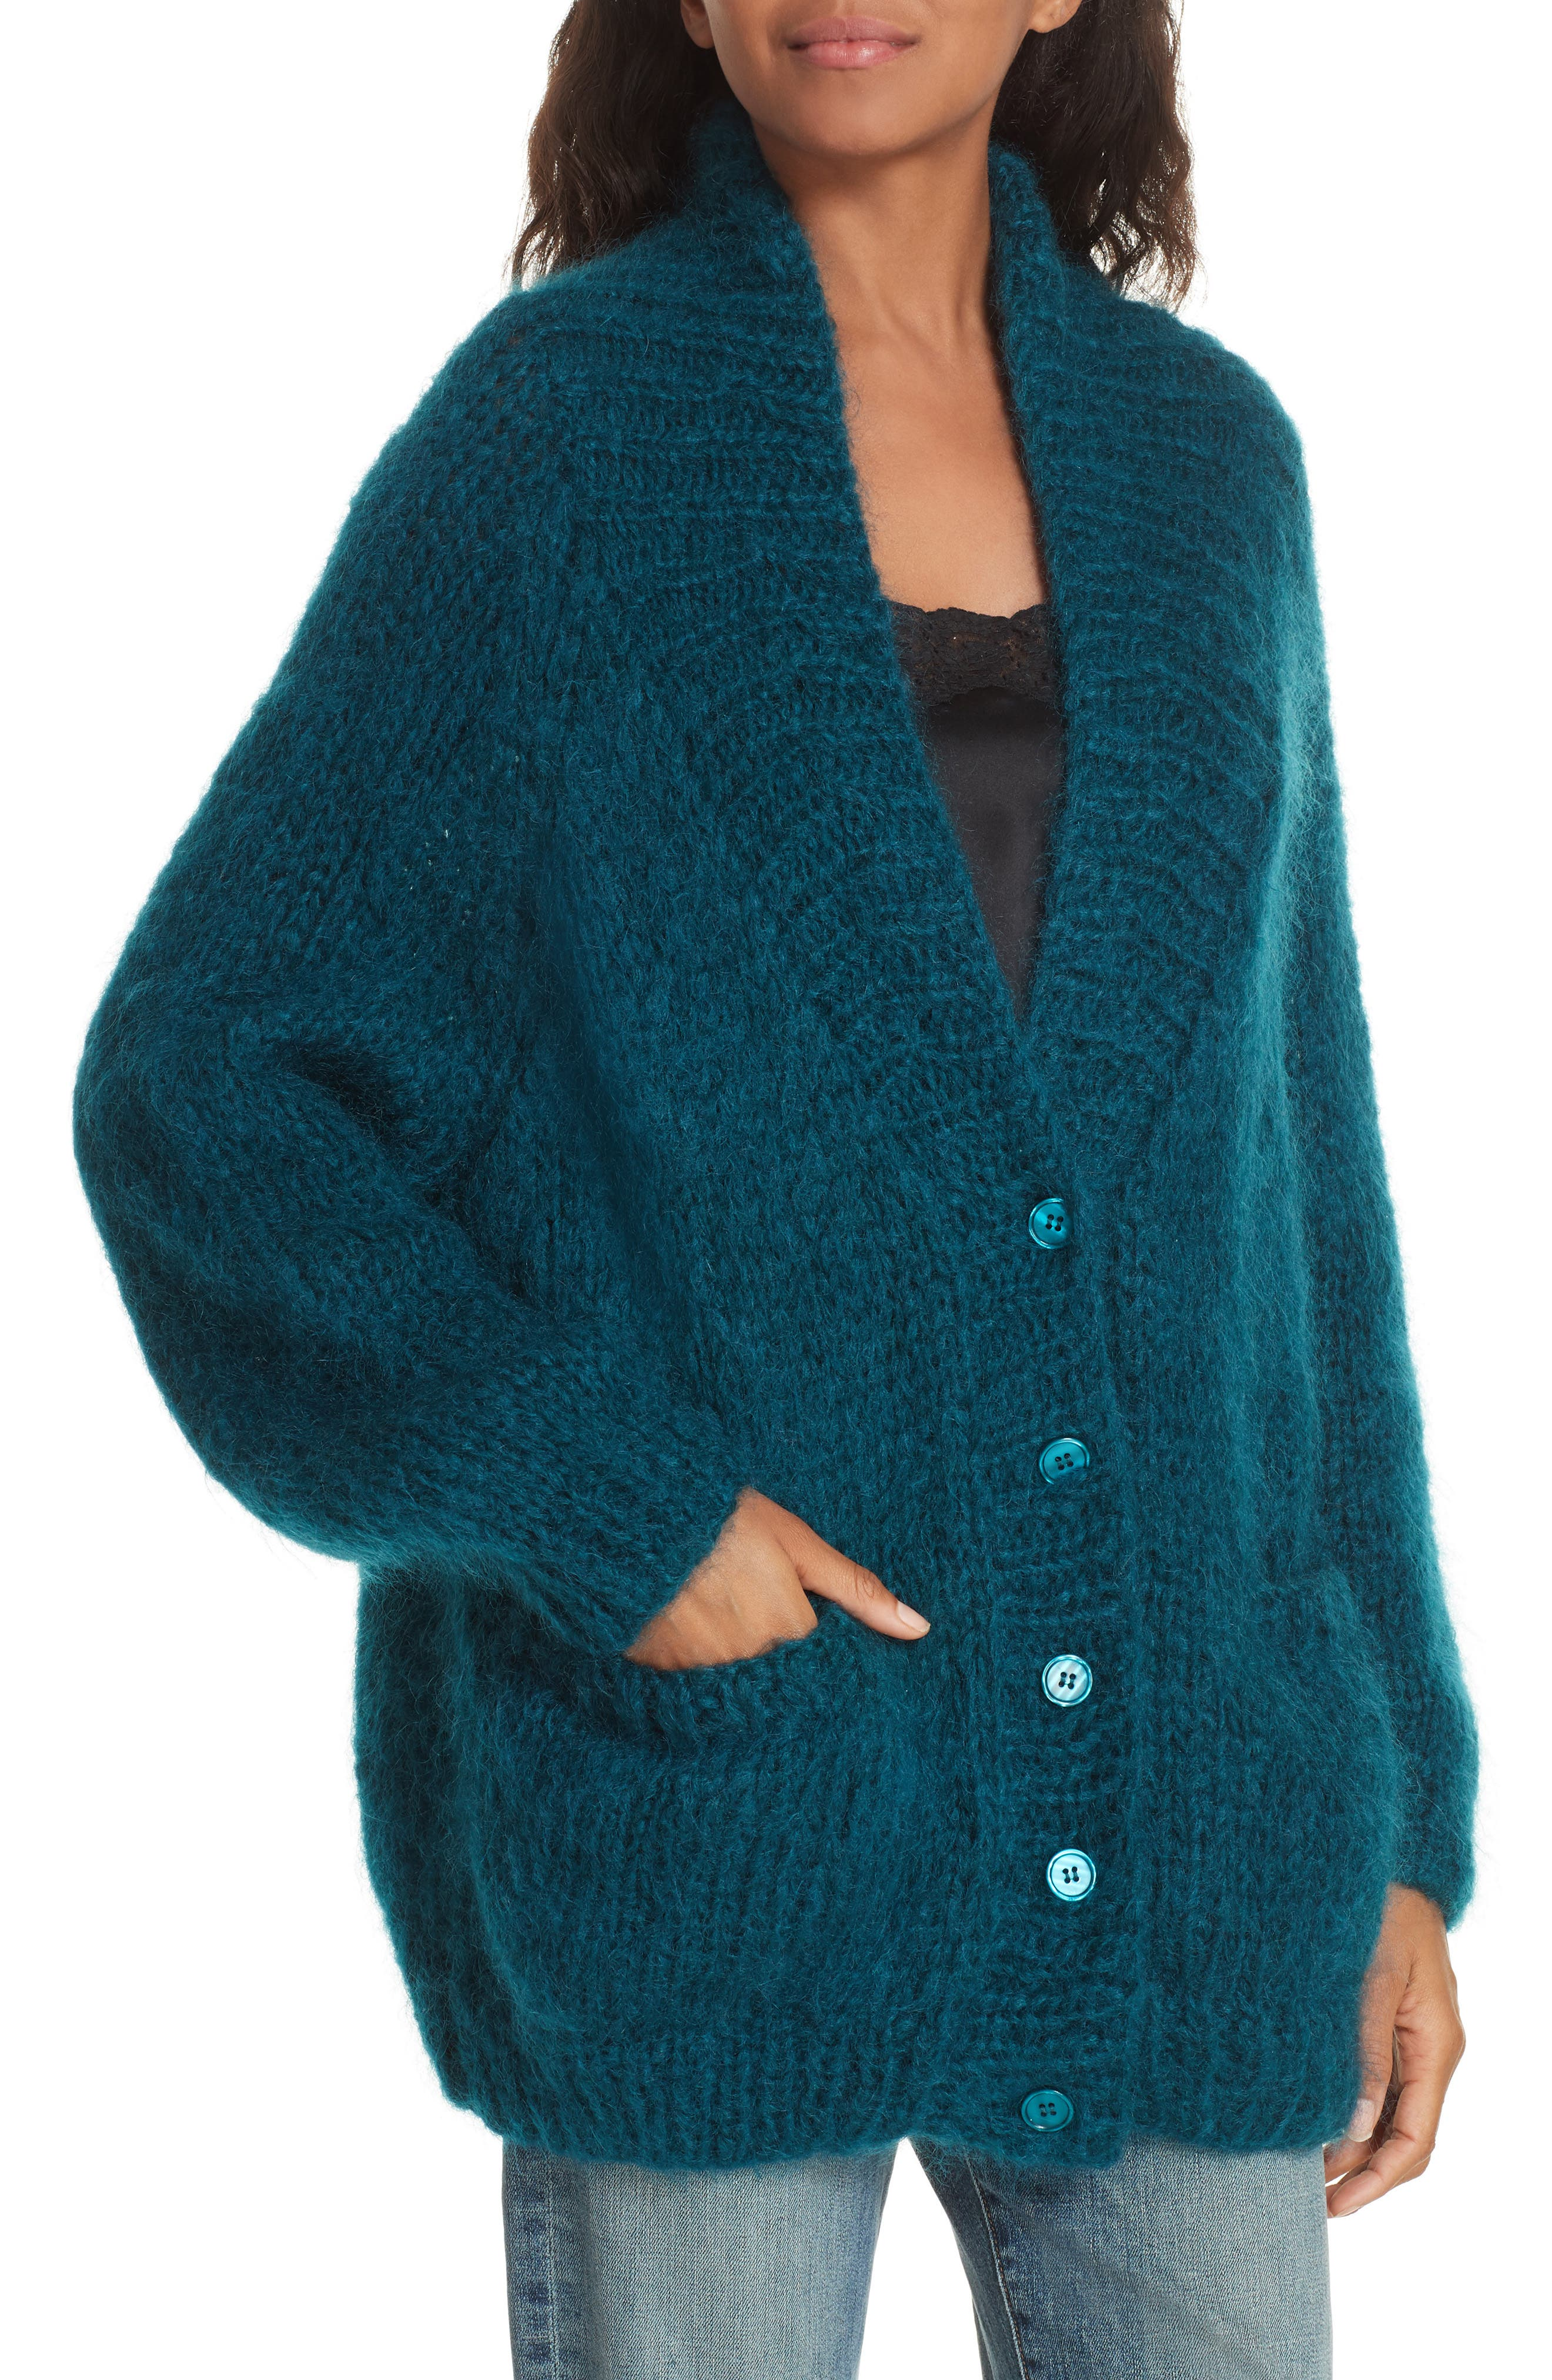 Knitted Cardigan,                             Alternate thumbnail 4, color,                             440